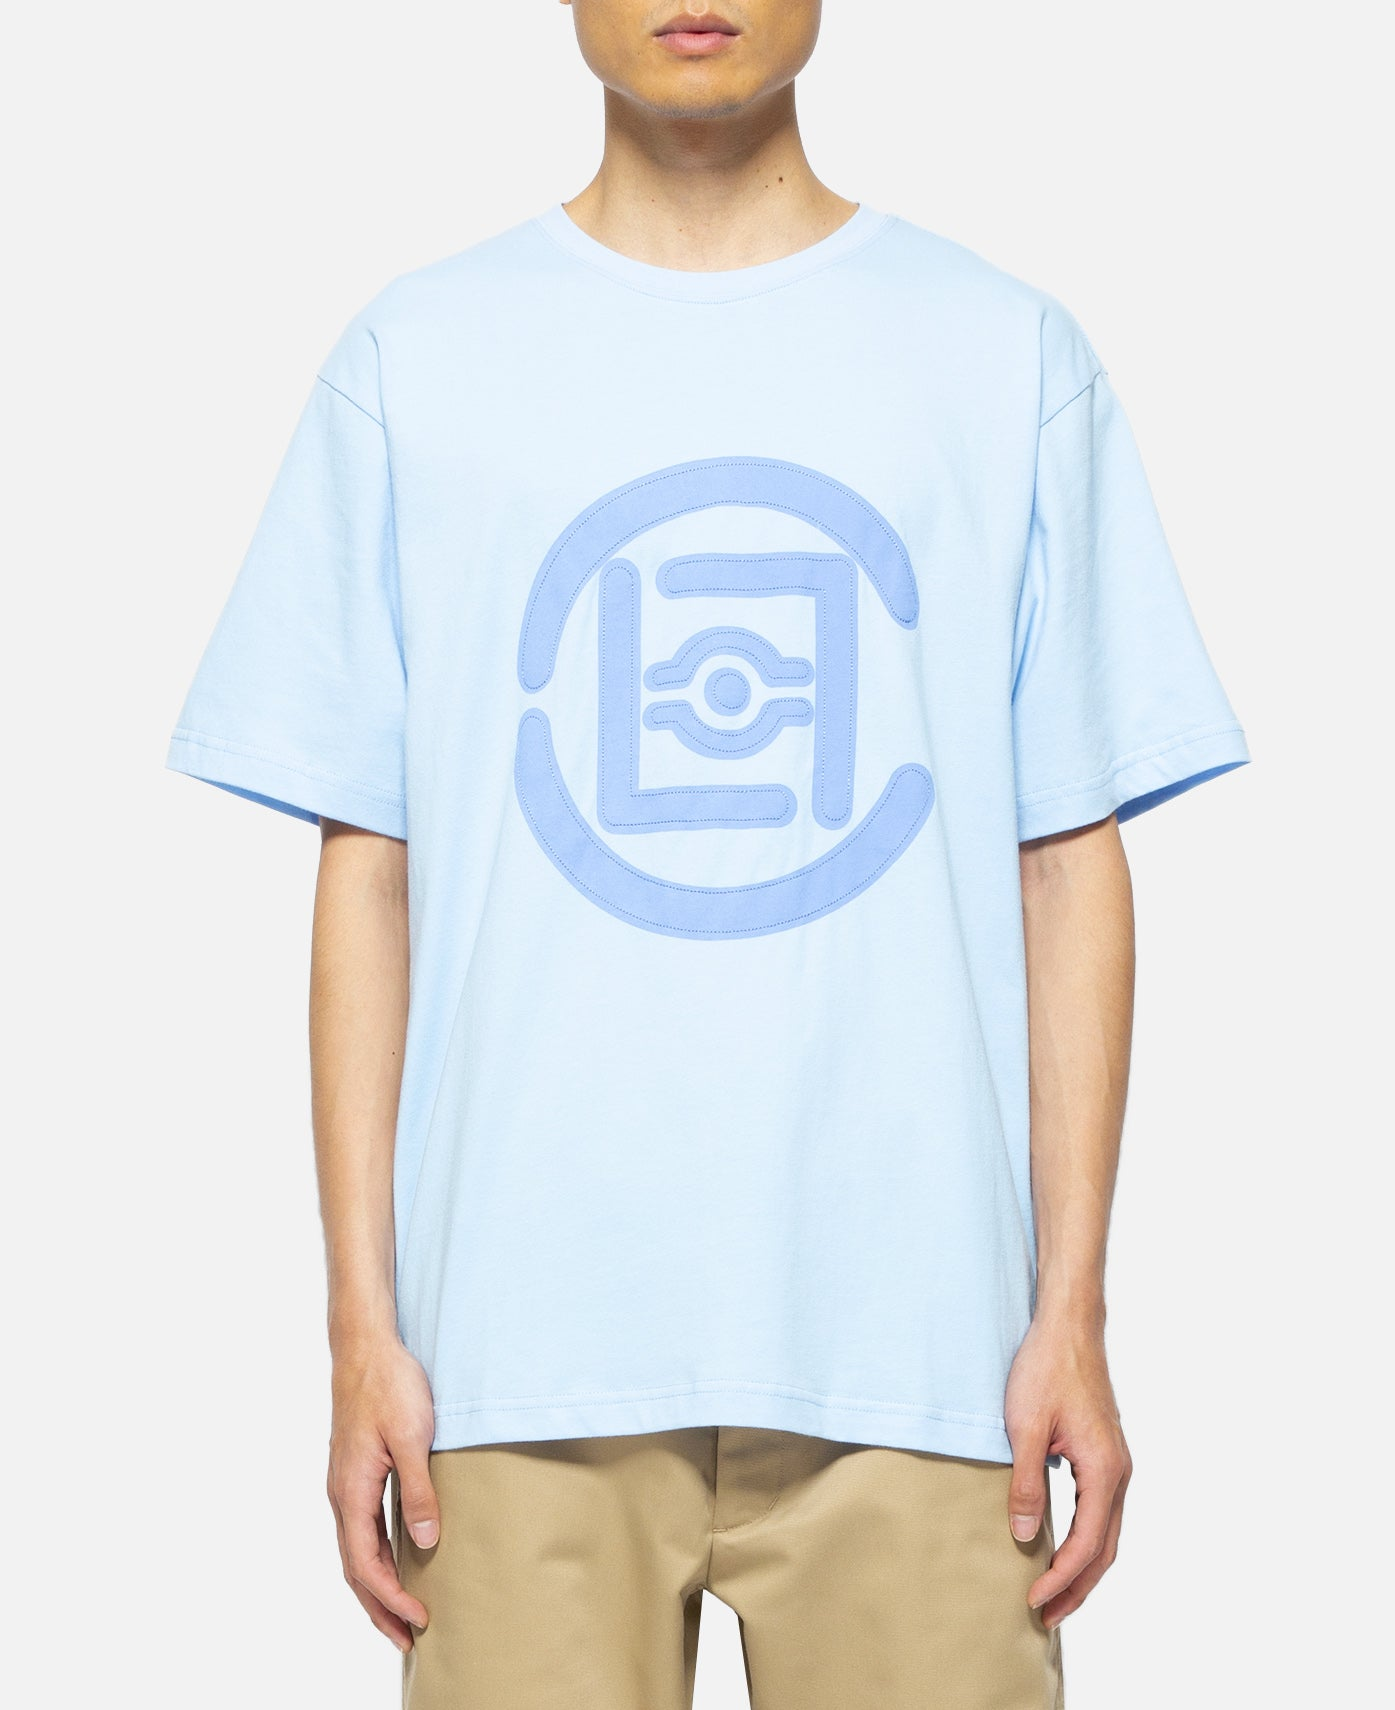 Fifth Elemental CLOT T-Shirt (Blue)